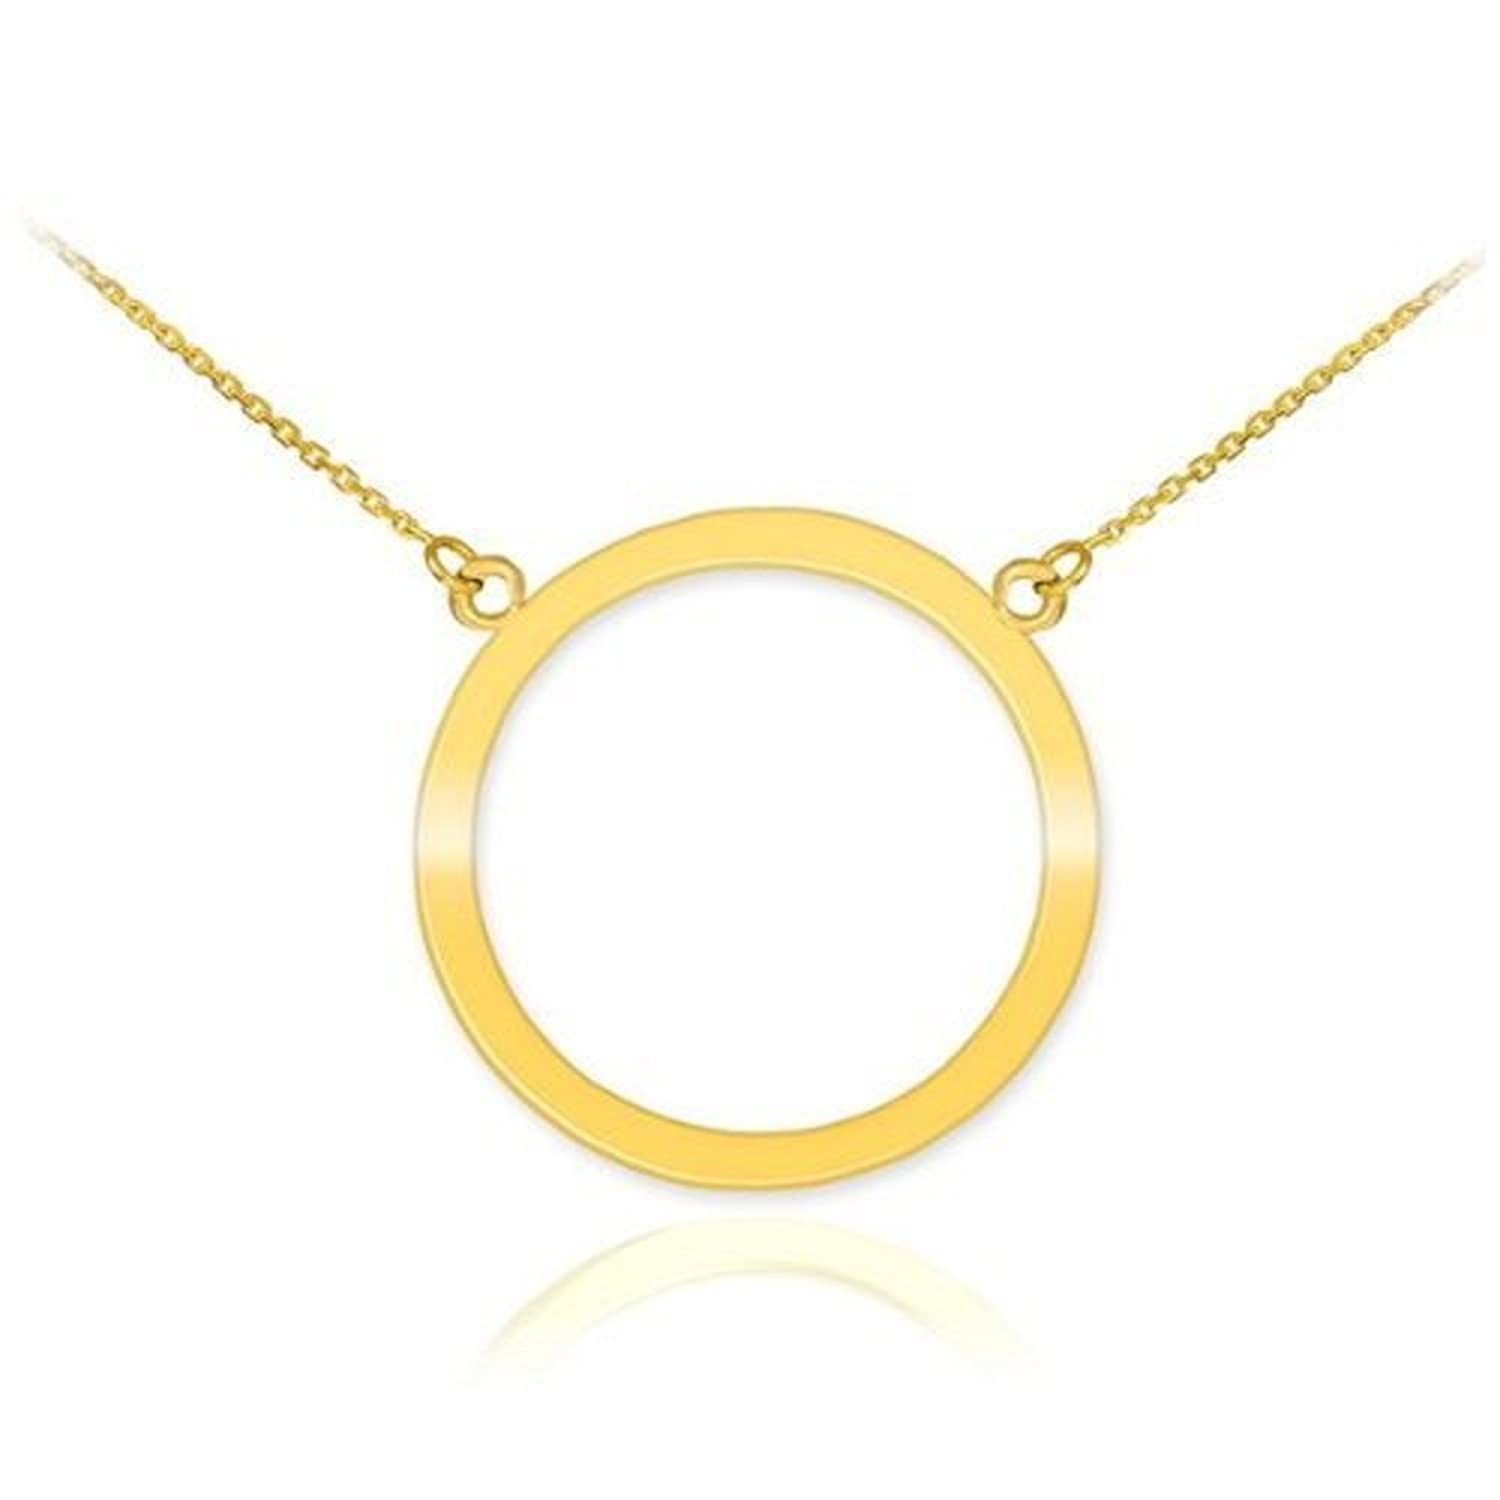 Amazon 14k yellow gold circle of life pendant karma necklace amazon 14k yellow gold circle of life pendant karma necklace 16 jewelry aloadofball Image collections